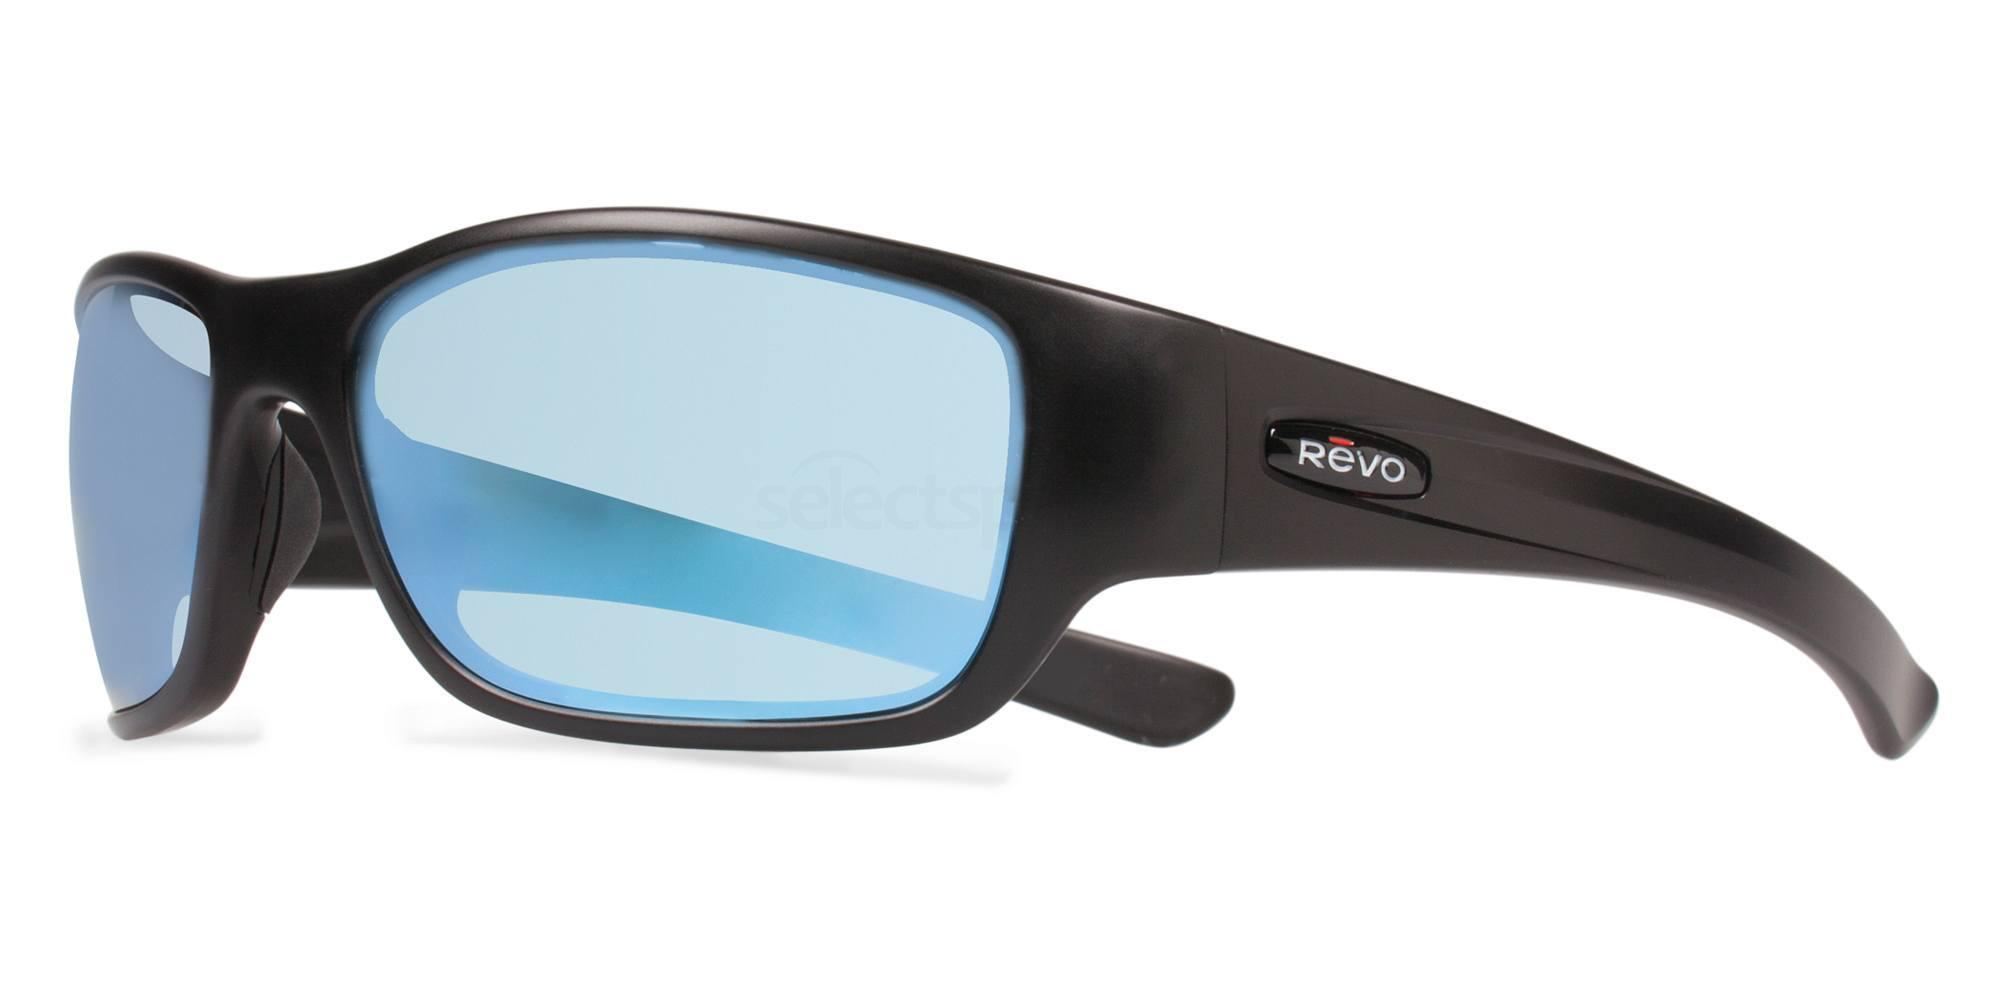 01BL Heading - 354058 Sunglasses, Revo